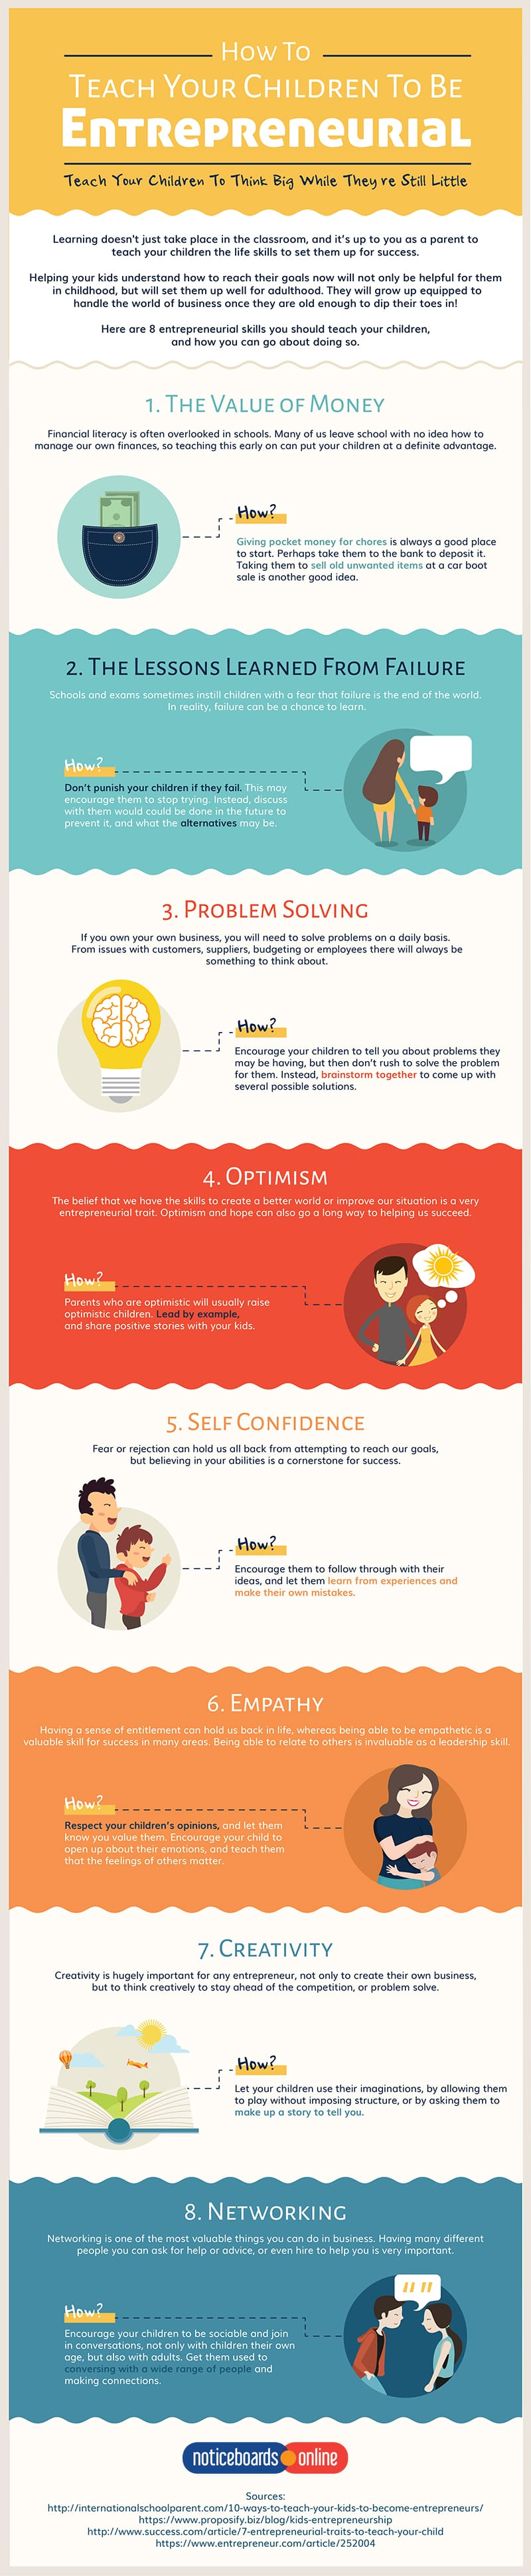 Childhood Literacy Goals: How to Teach Your Kids to be Entrepreneurial - Infographic